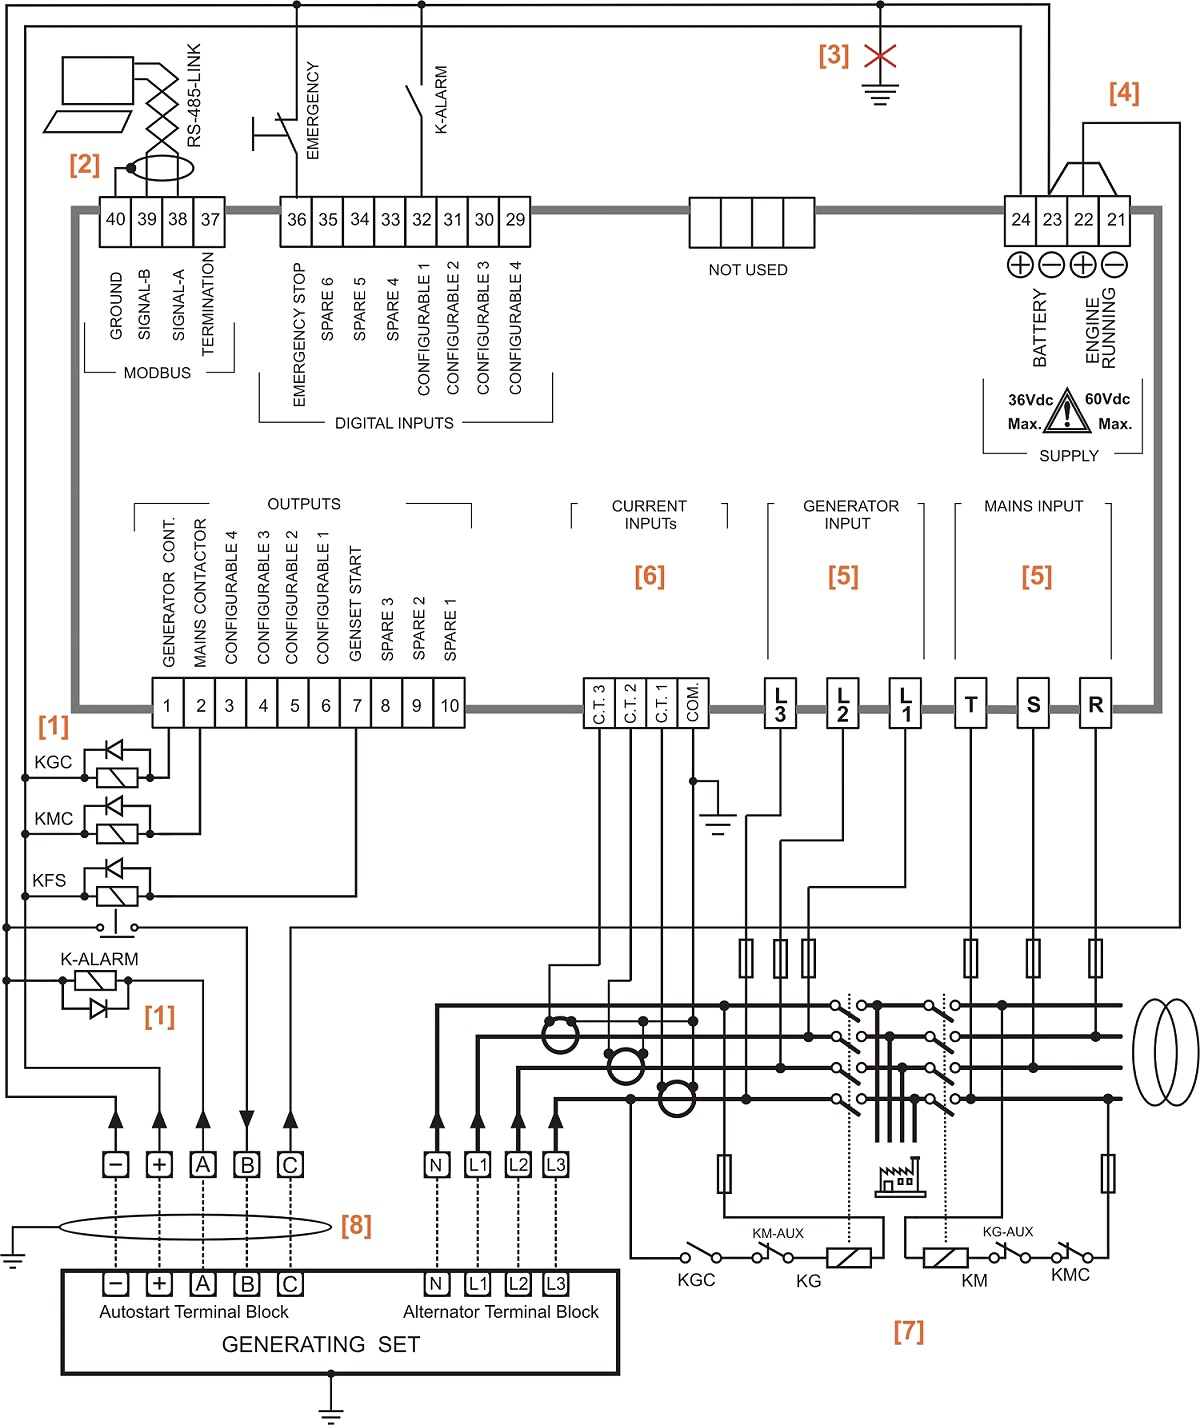 Honeywell Ats Wiring Diagram Another Diagrams Free Rv Asco Real U2022 Rh Mcmxliv Co 30 Amp 50